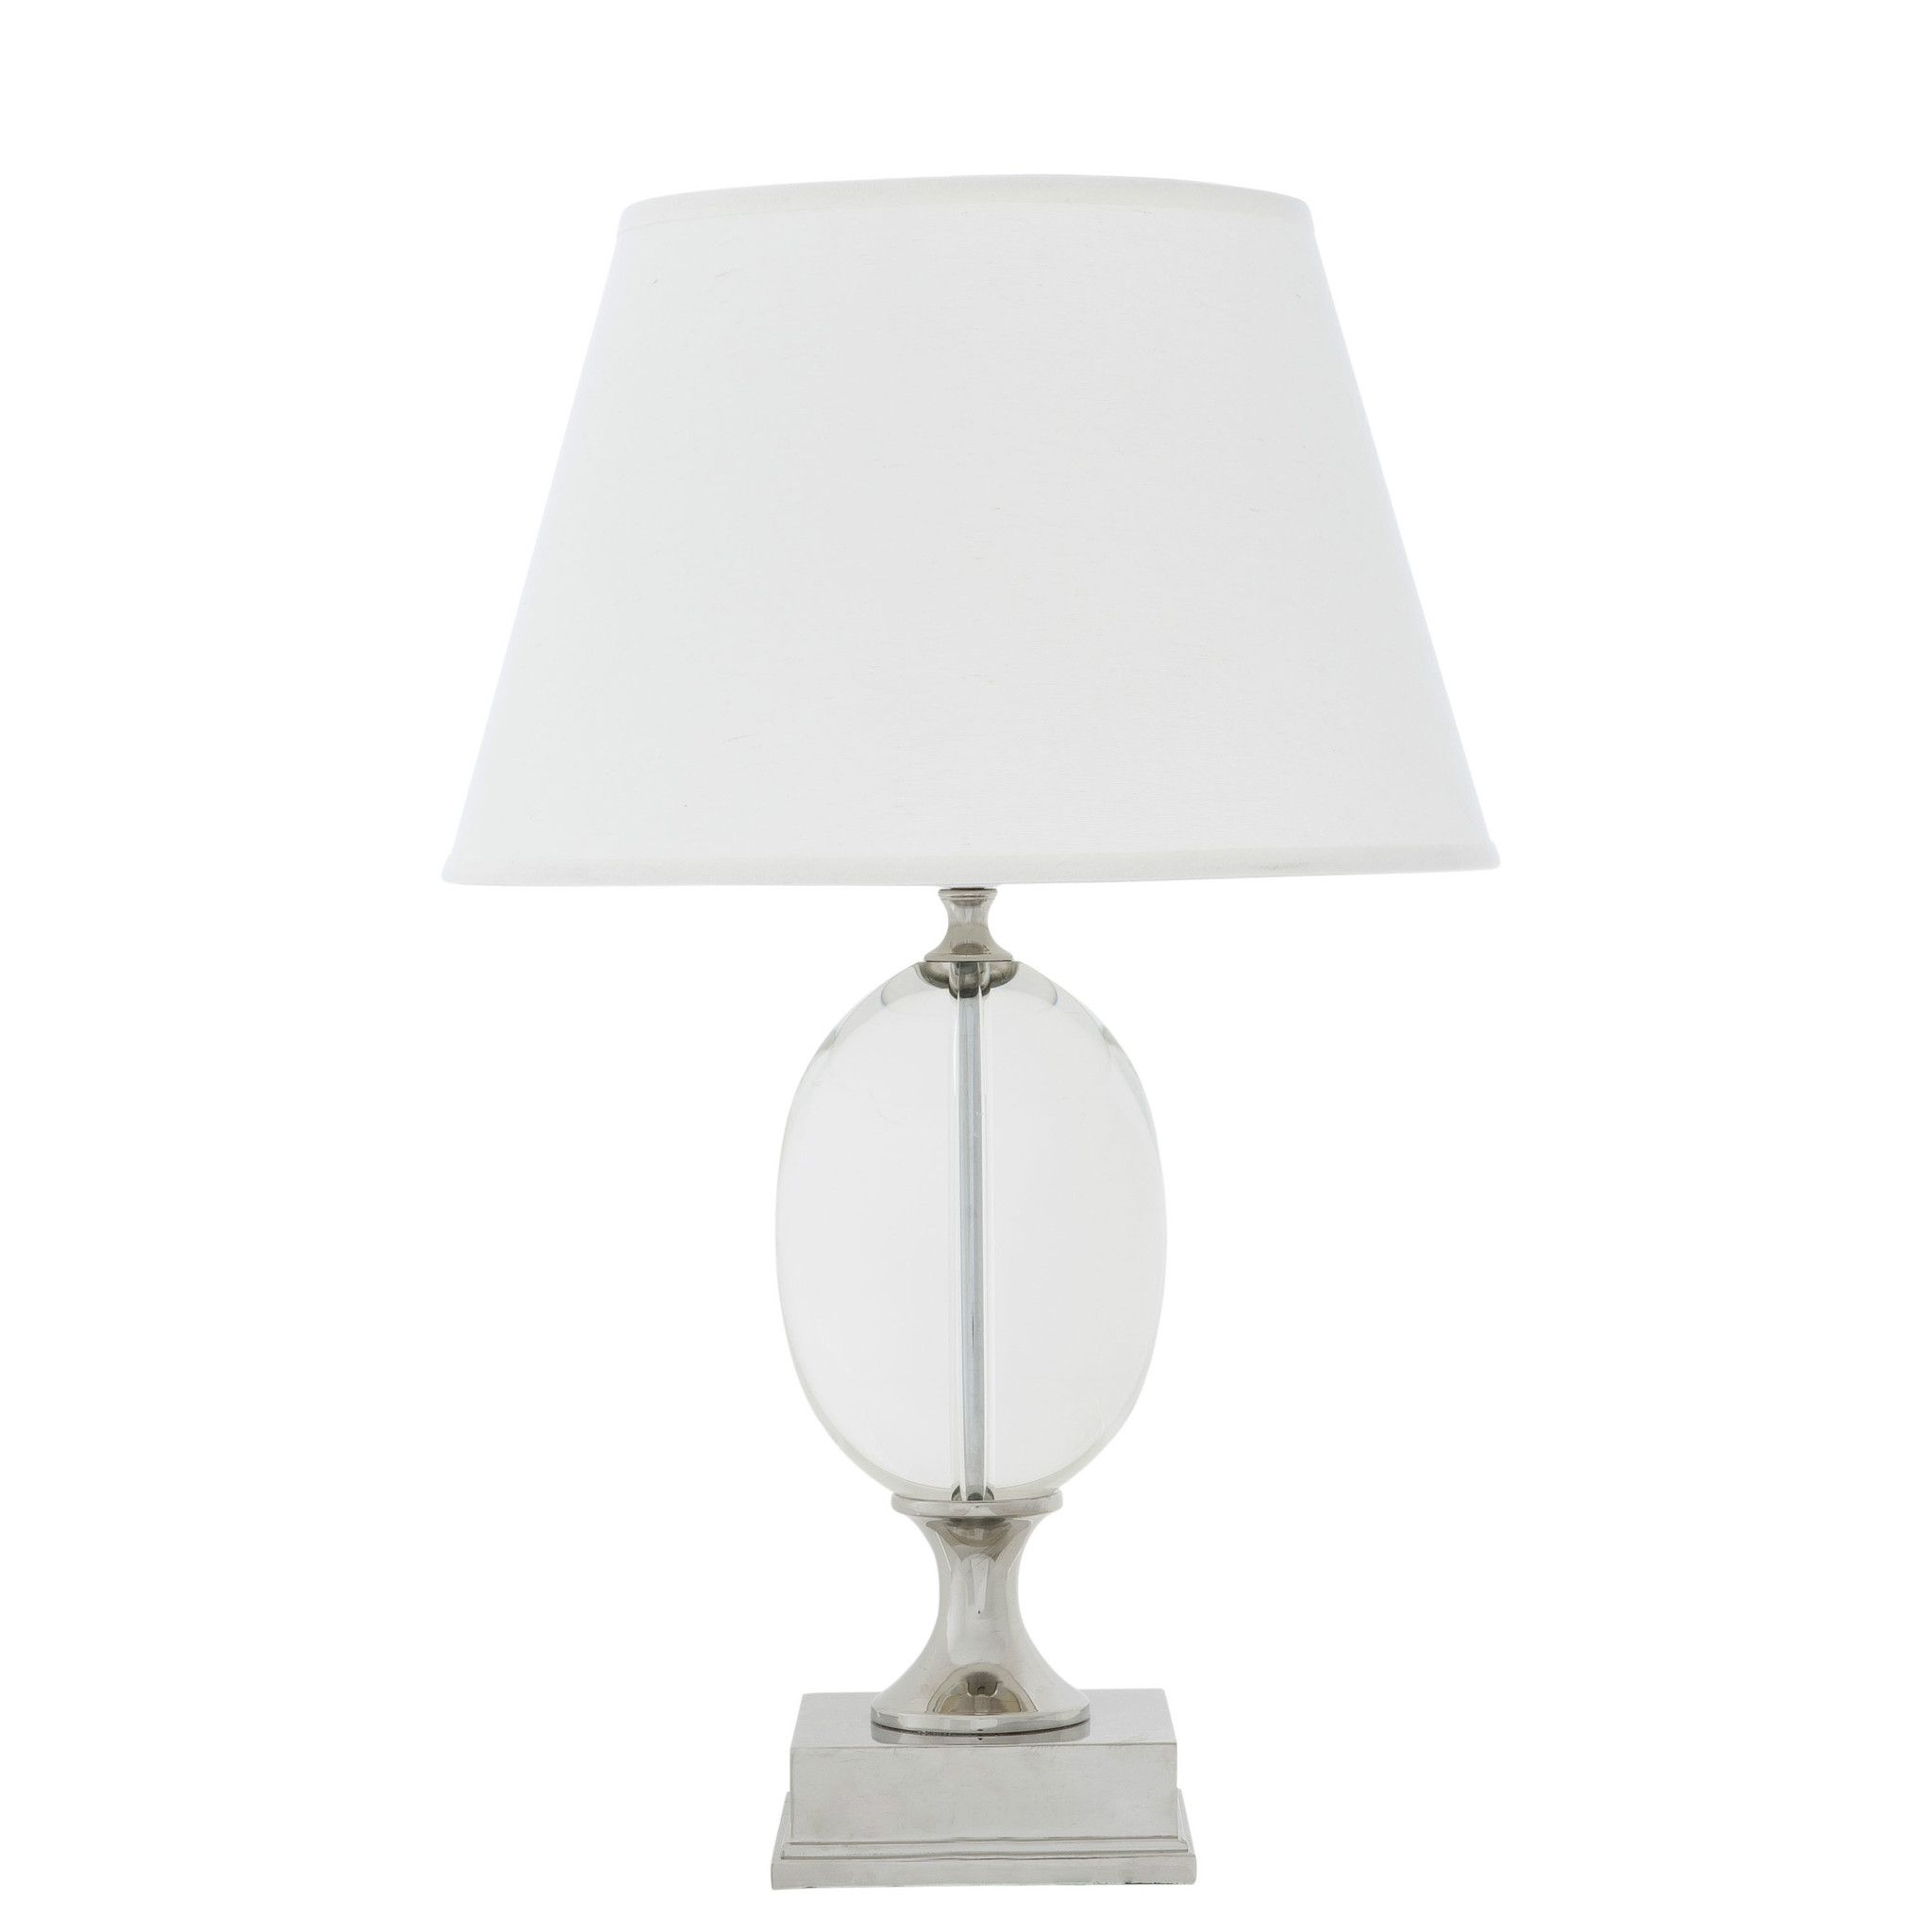 Eichholtz Table Lamp Galvin